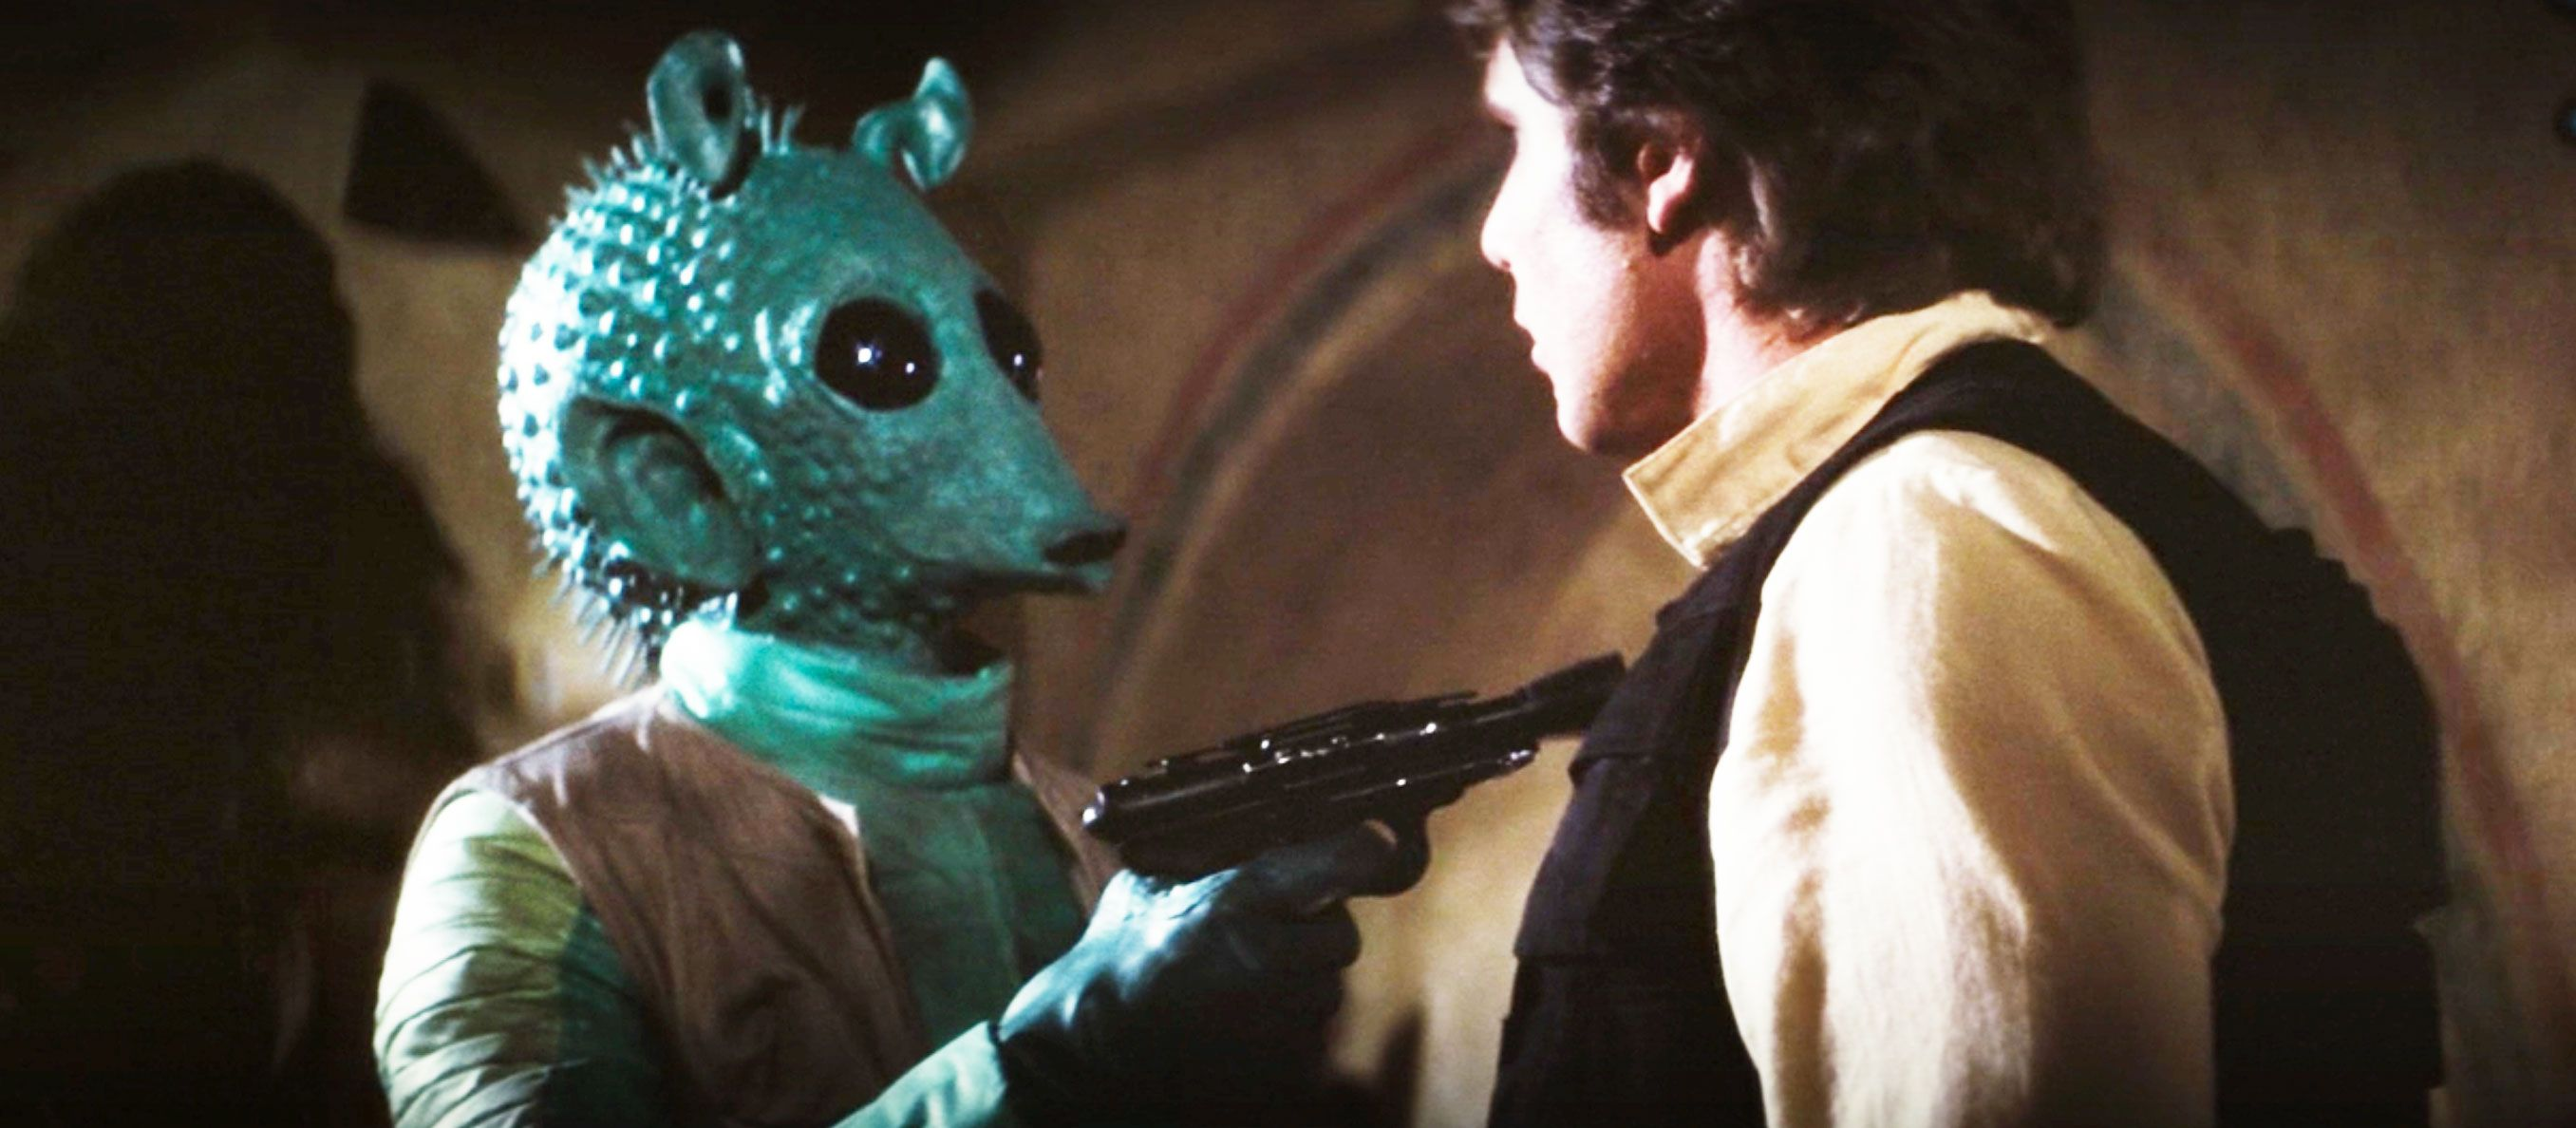 George Lucas Edited Star Wars to Have Greedo Say 'MACLUNKEY' Before Shooting at Han Solo